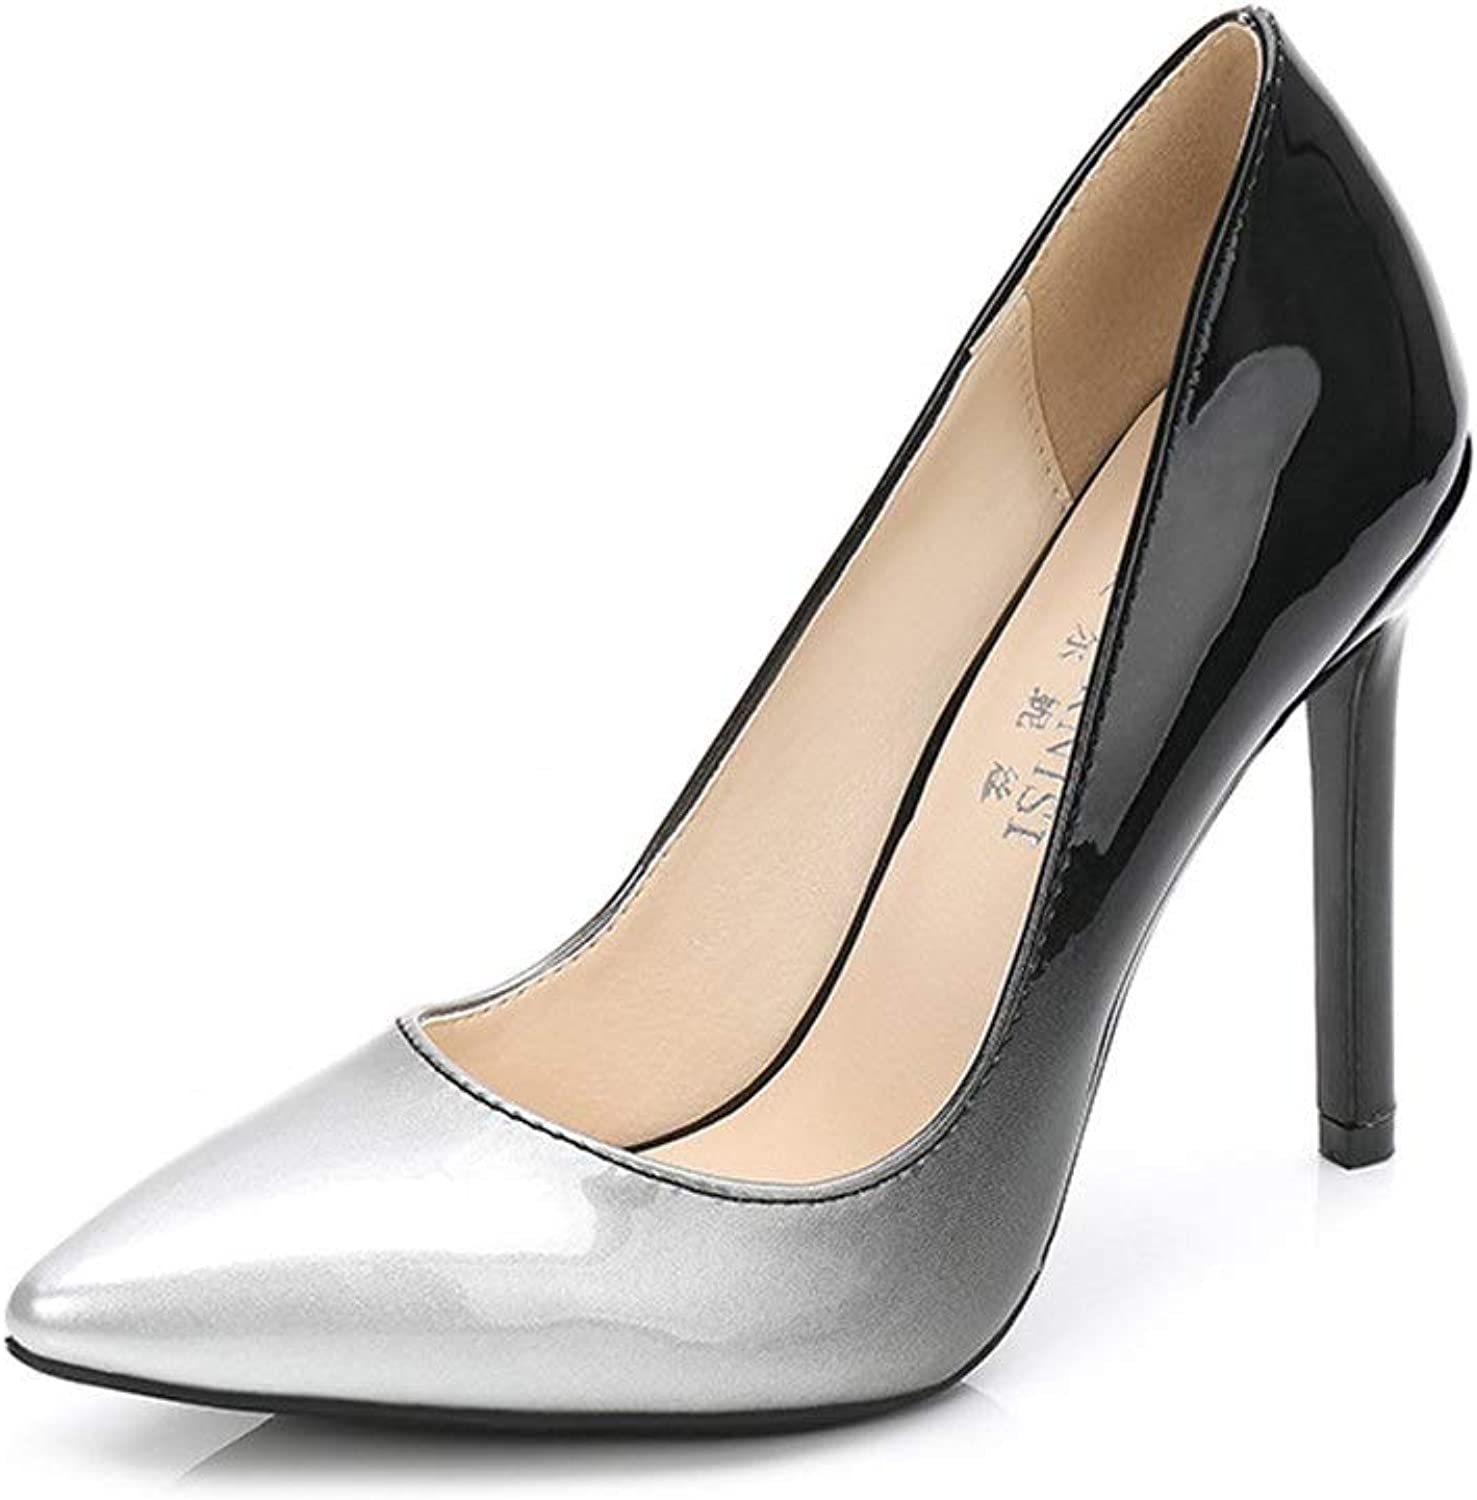 Women's Pointed High Heels Stiletto Closed Gradient Printed Patent Leather Pumps Court shoes Wedding shoes (11cm)